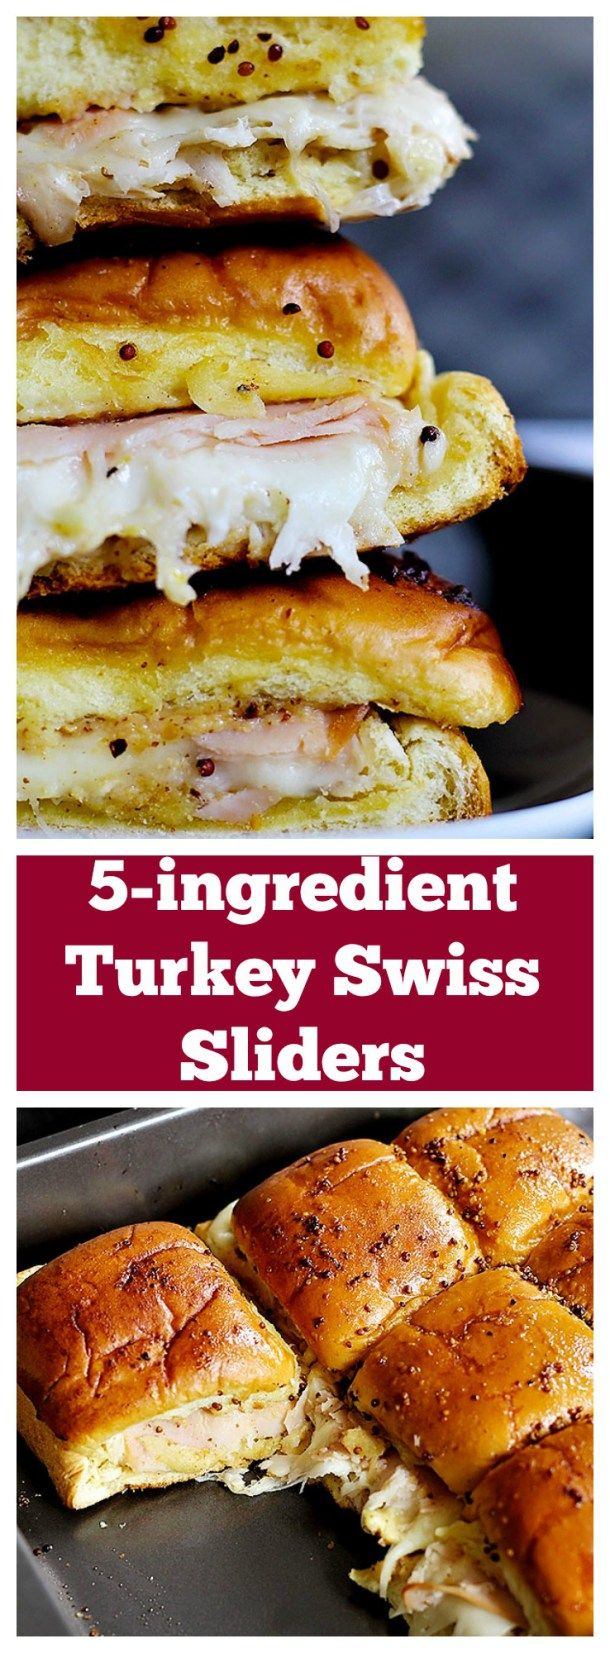 These 5-ingredient Turkey Swiss Sliders are easy and perfect for parties, game days, or any other gatherings! Ooey gooey cheese and delicious smoked turkey make a wonderful combination!